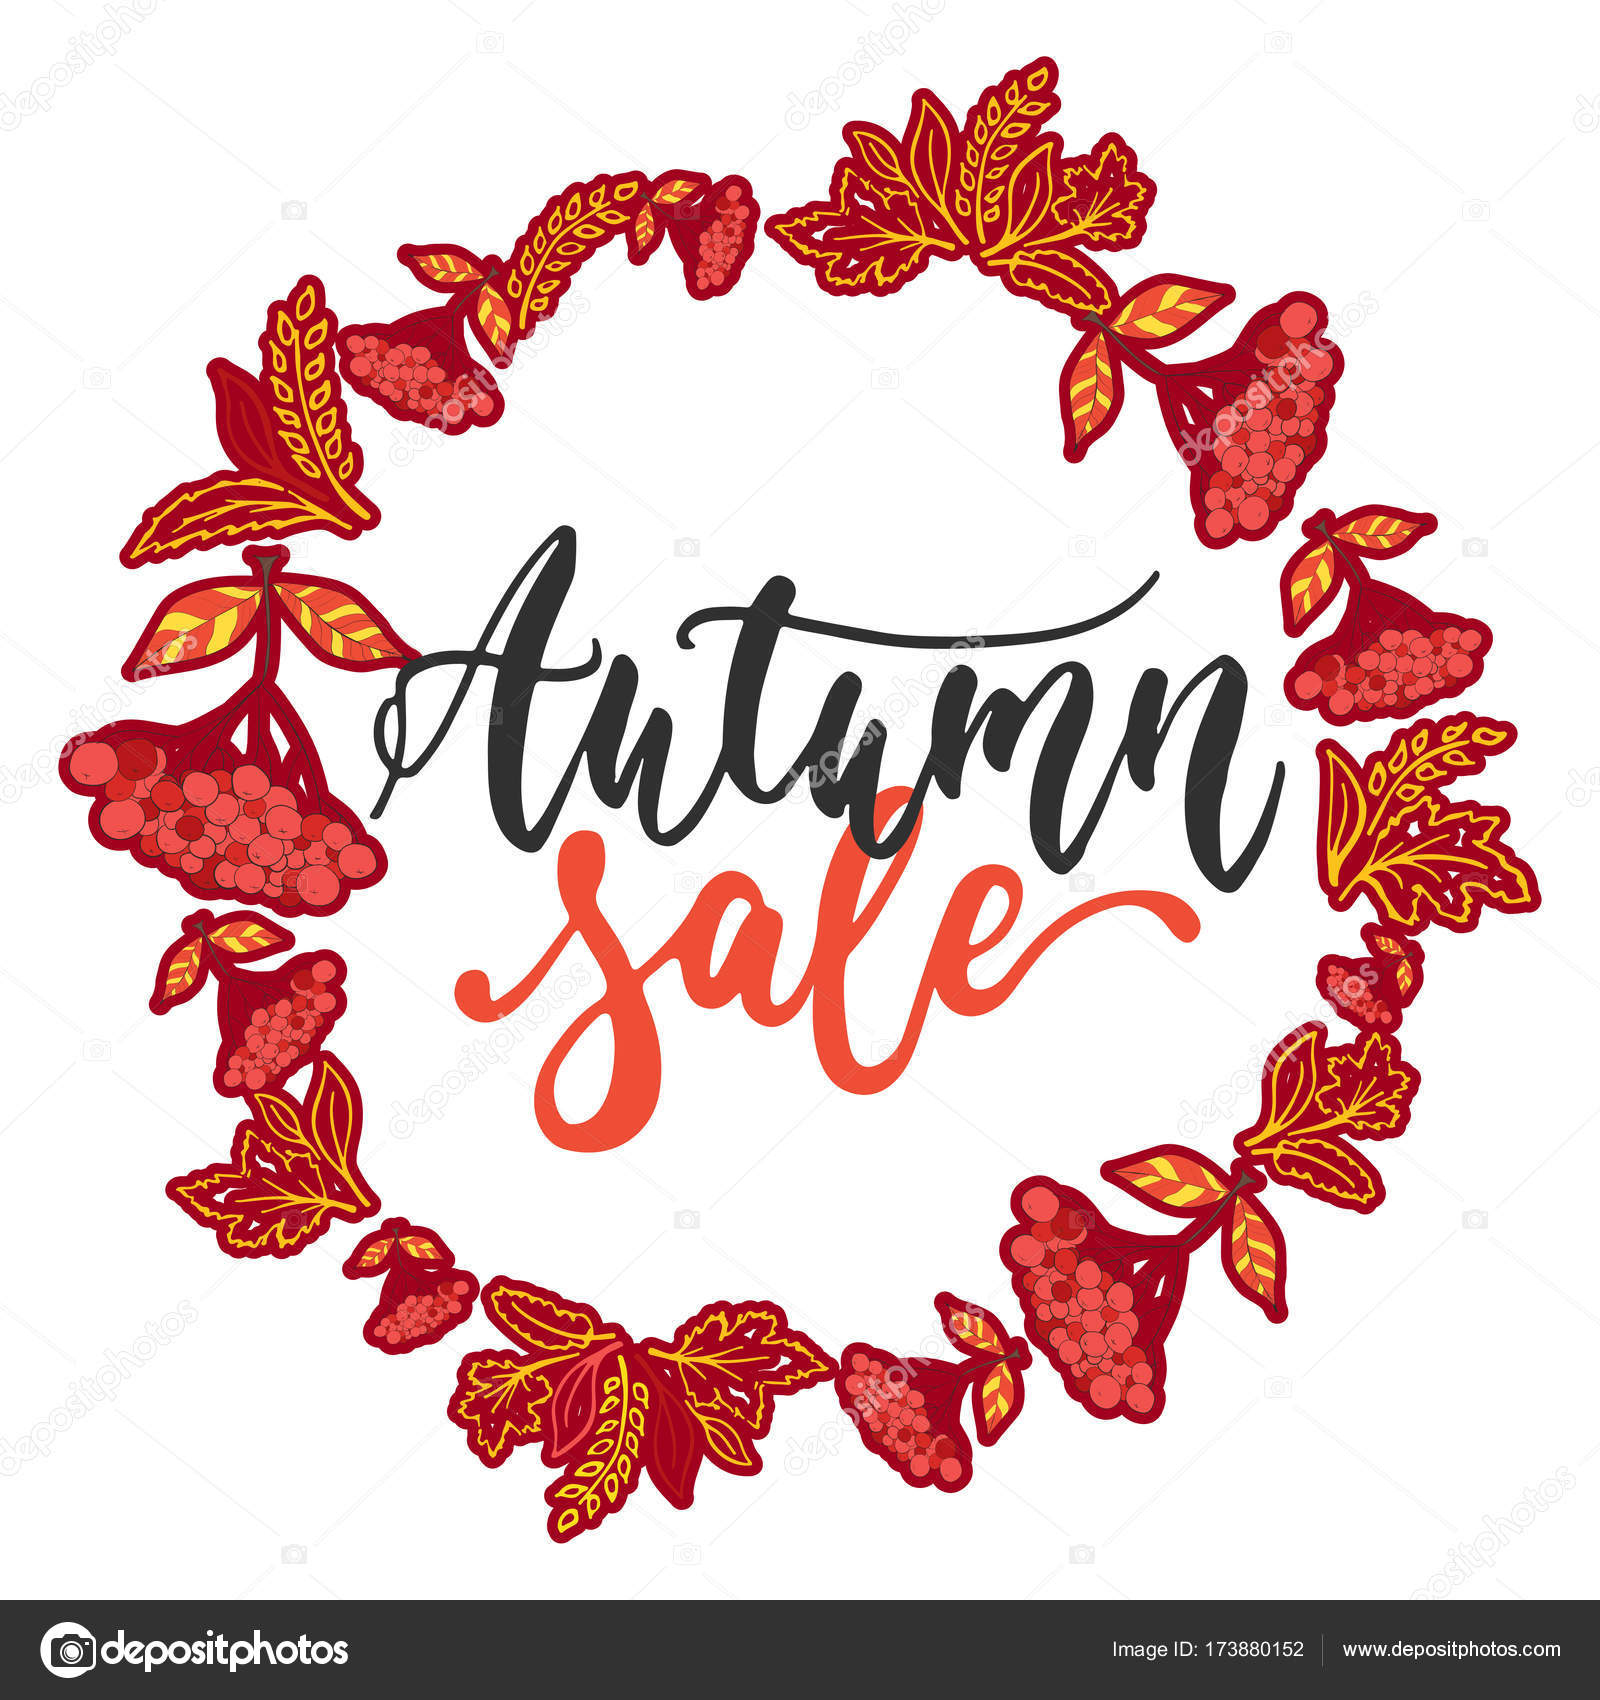 Charming Autumn Fall Sale   Hand Drawn Latin Lettering Quote With Wreath From Leaves  Isolated On The White Background. Fun Brush Ink Inscription For Greeting  Card Or ...